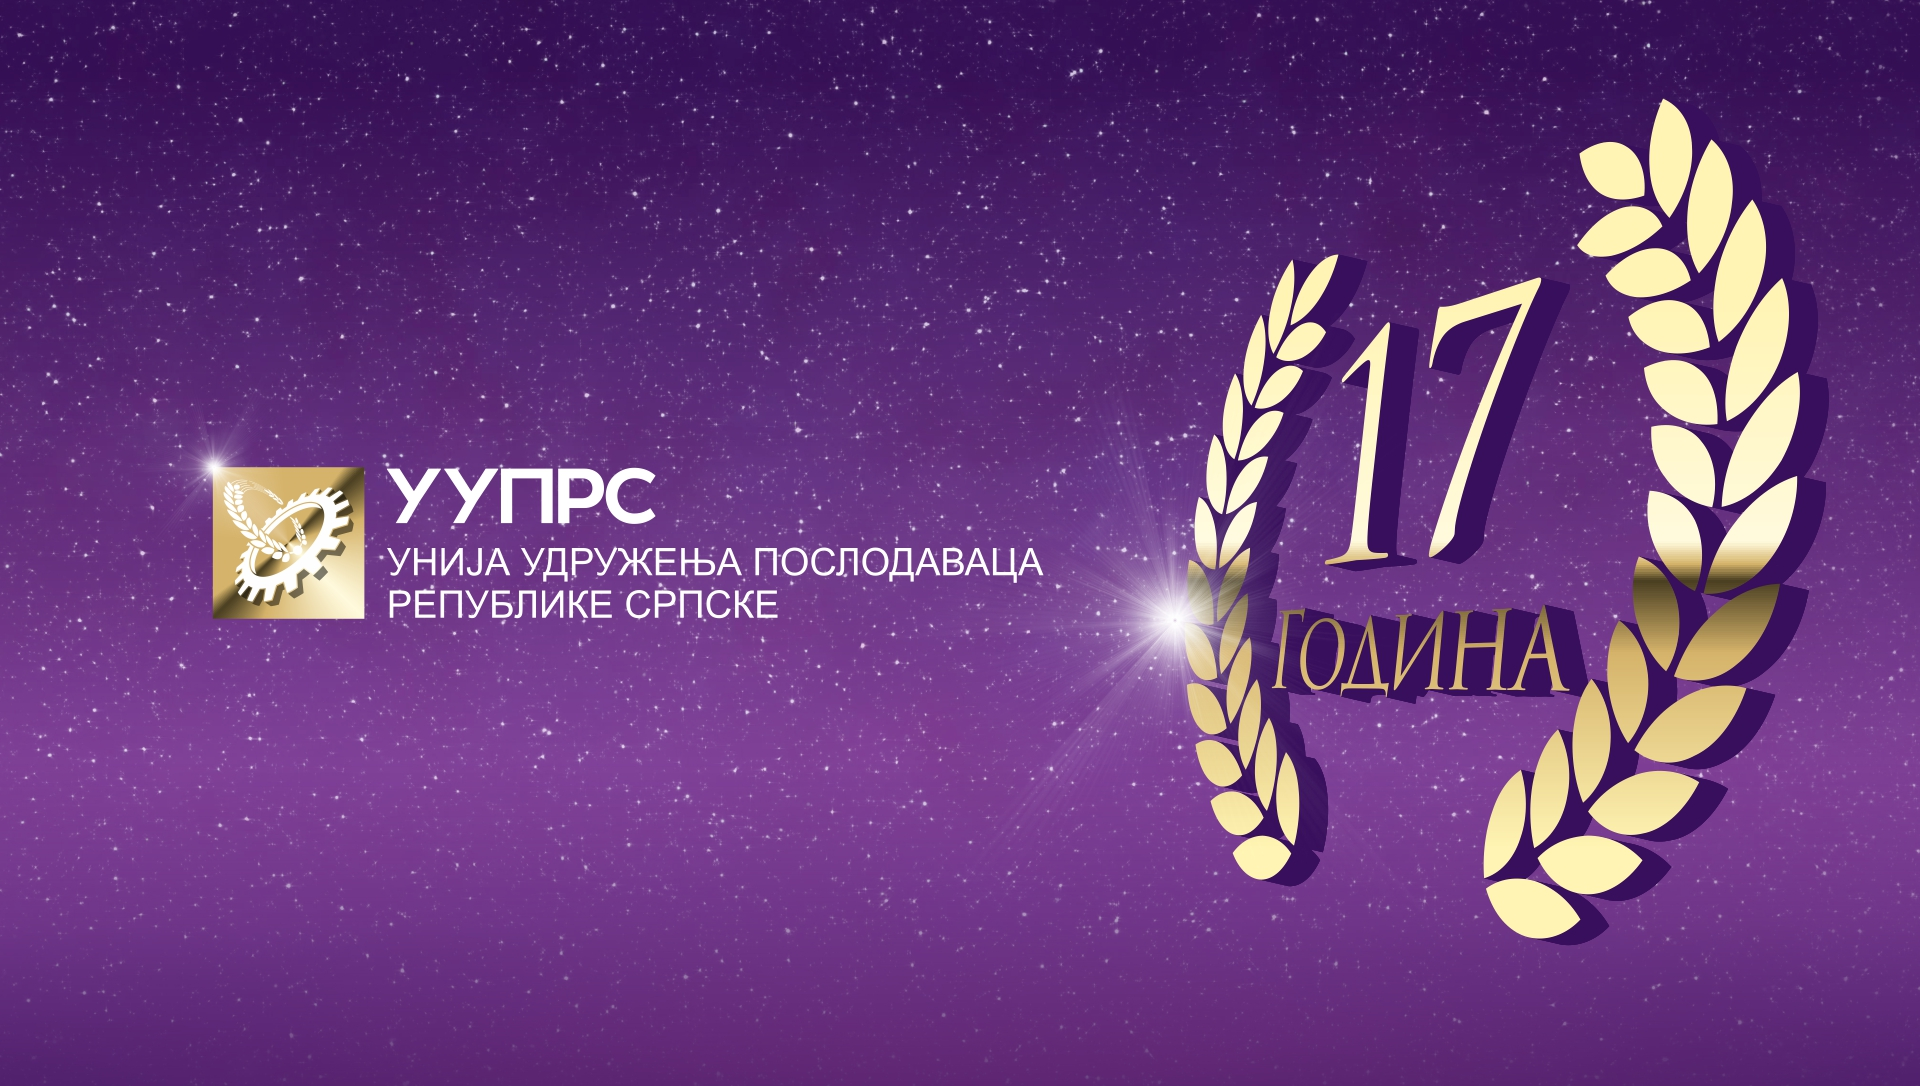 17 years of existence of the Union of Employers' Associations of Republic of Srpska